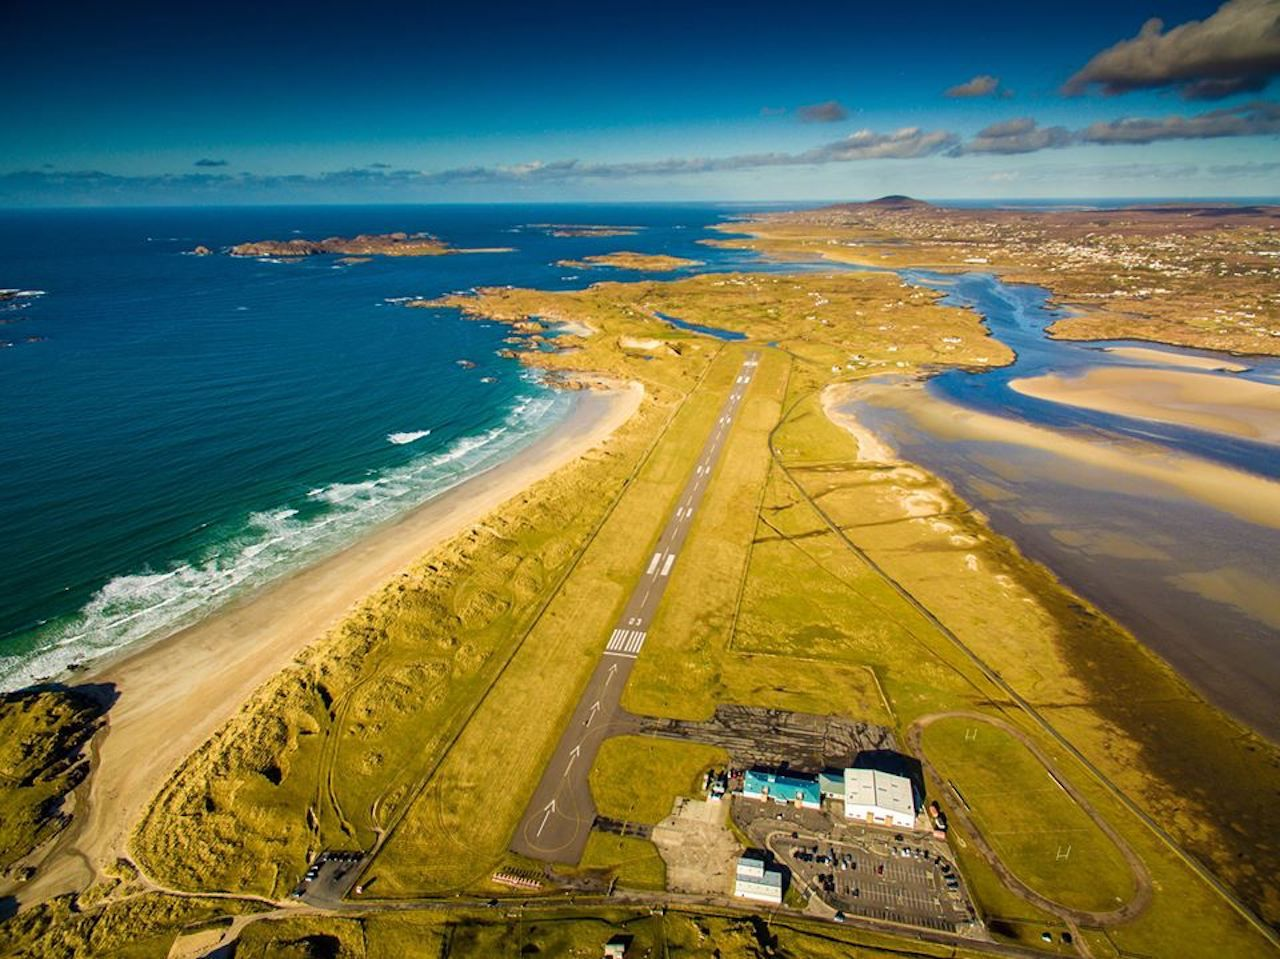 Most scenic airport named